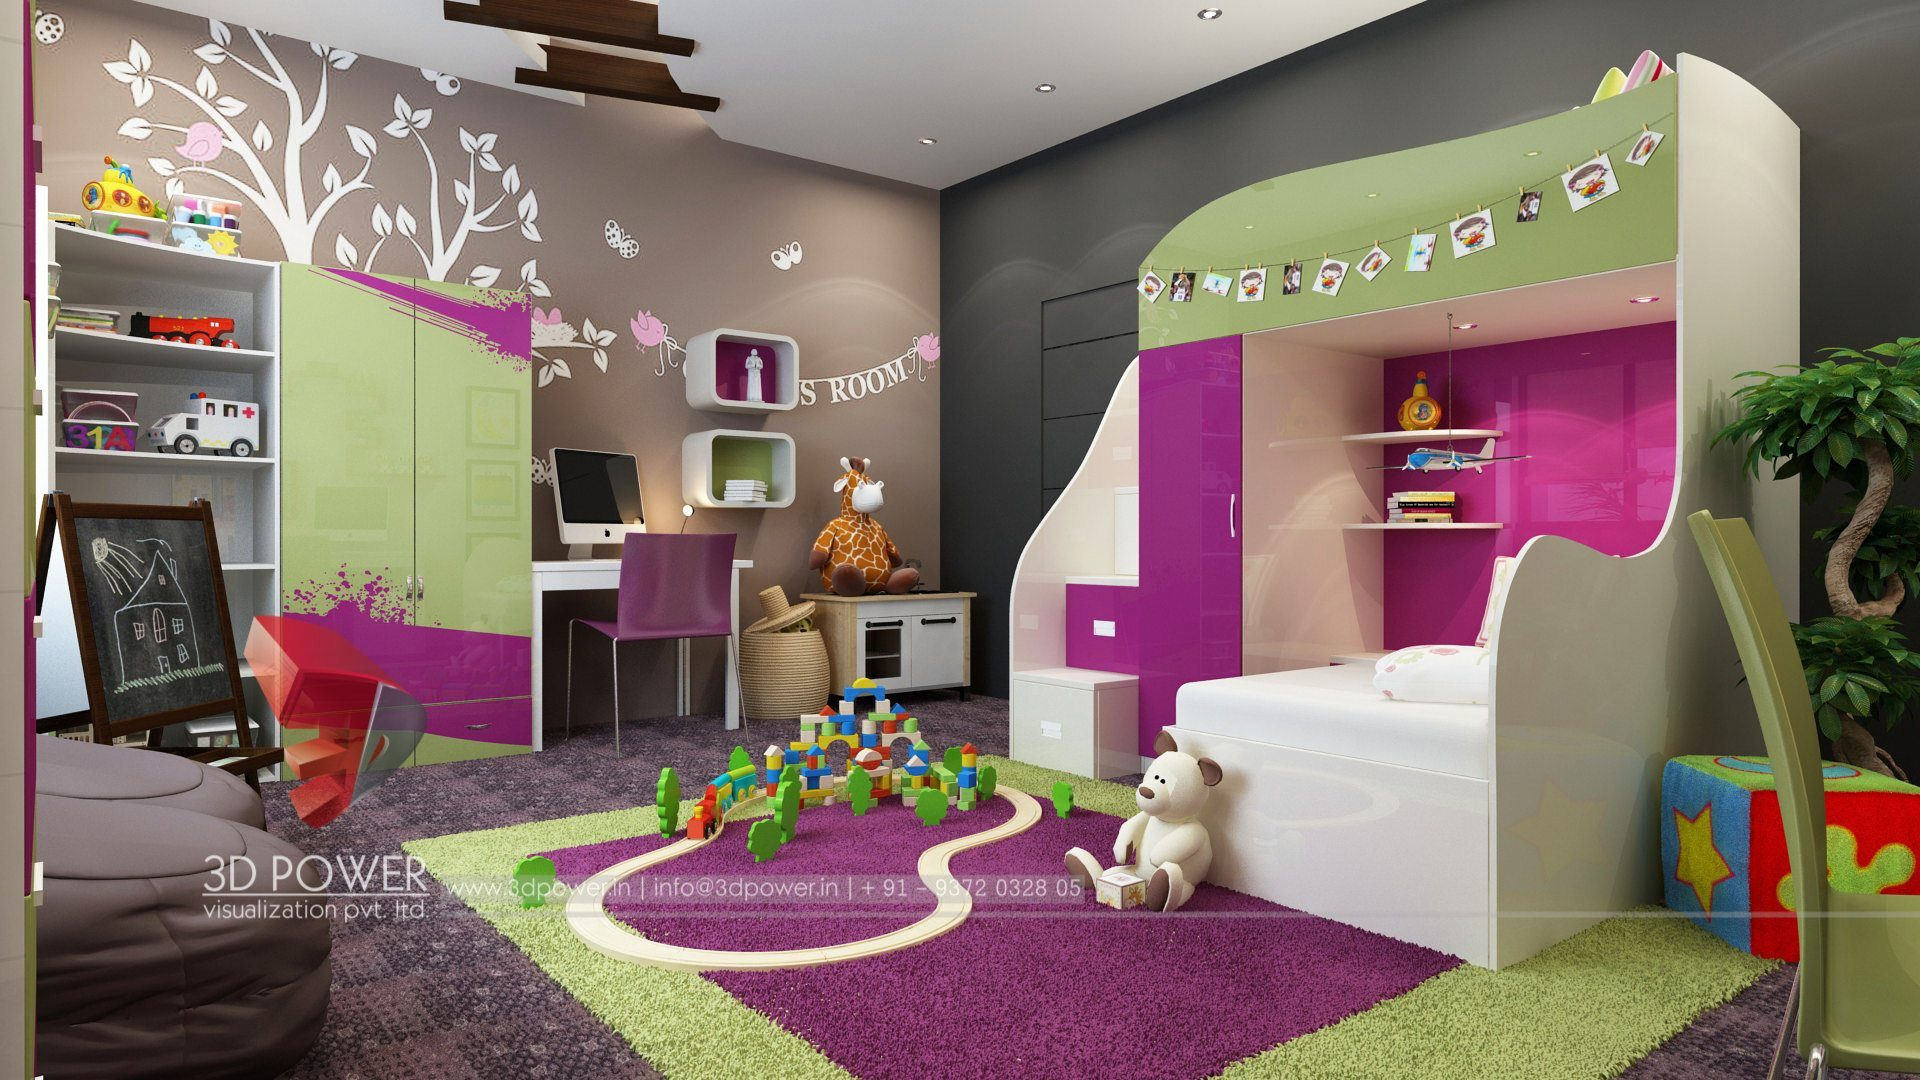 Interior Decoration 3d Interior Design And Rendering Services Bungalow And Home